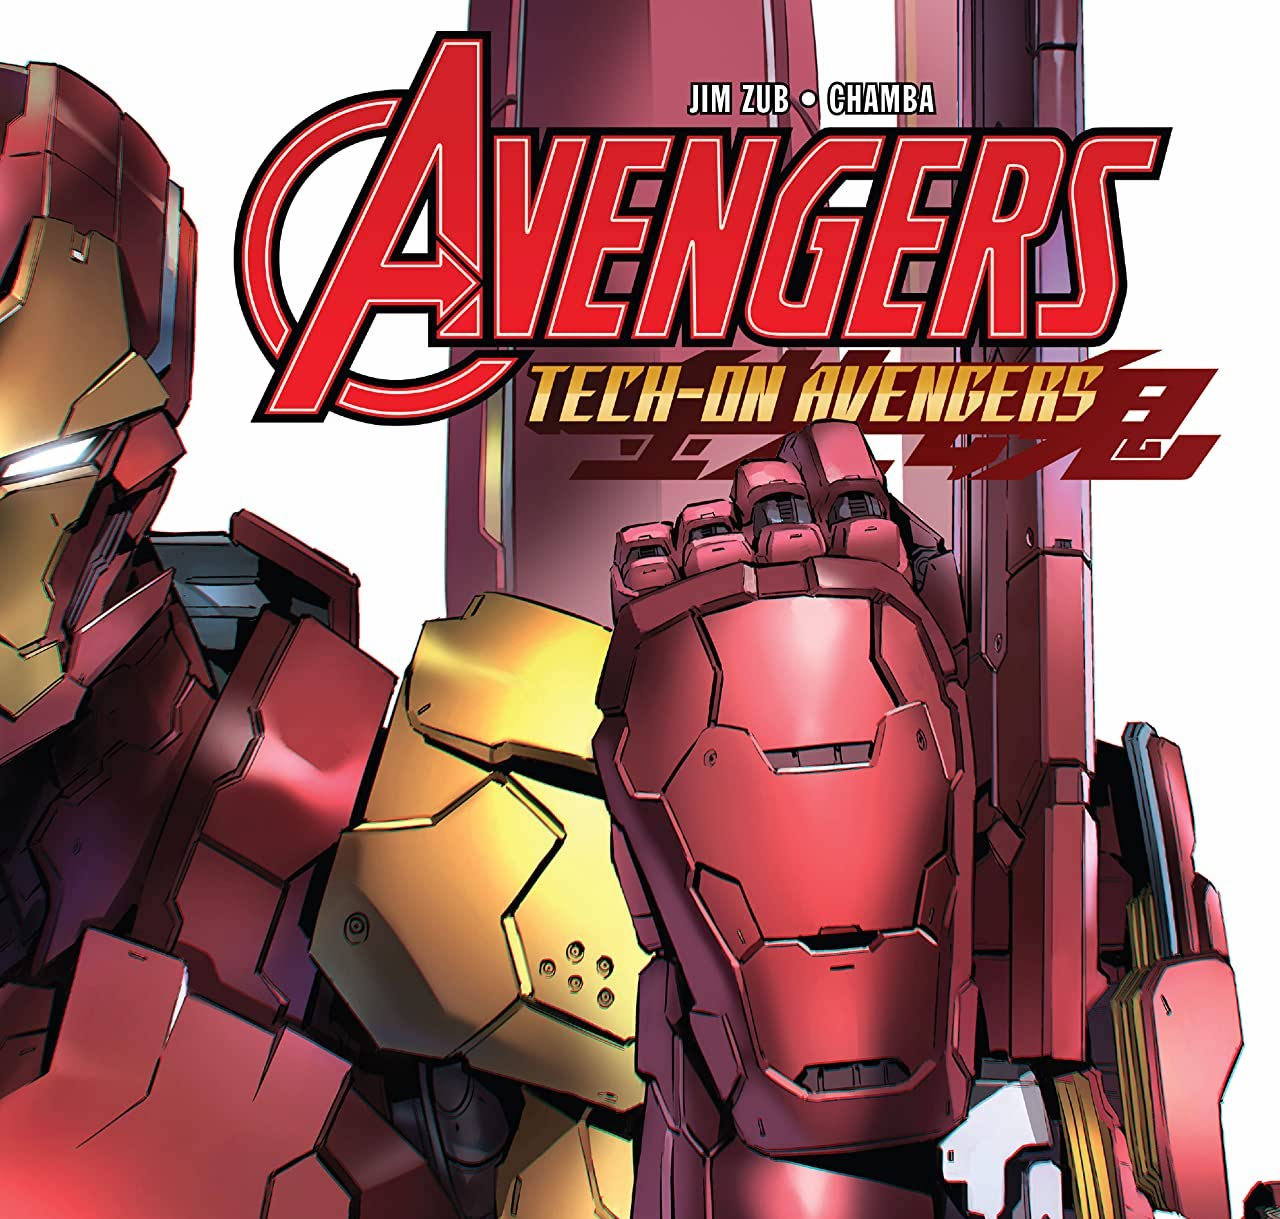 'Avengers: Tech-On' #1 is a heck of a lot of fun